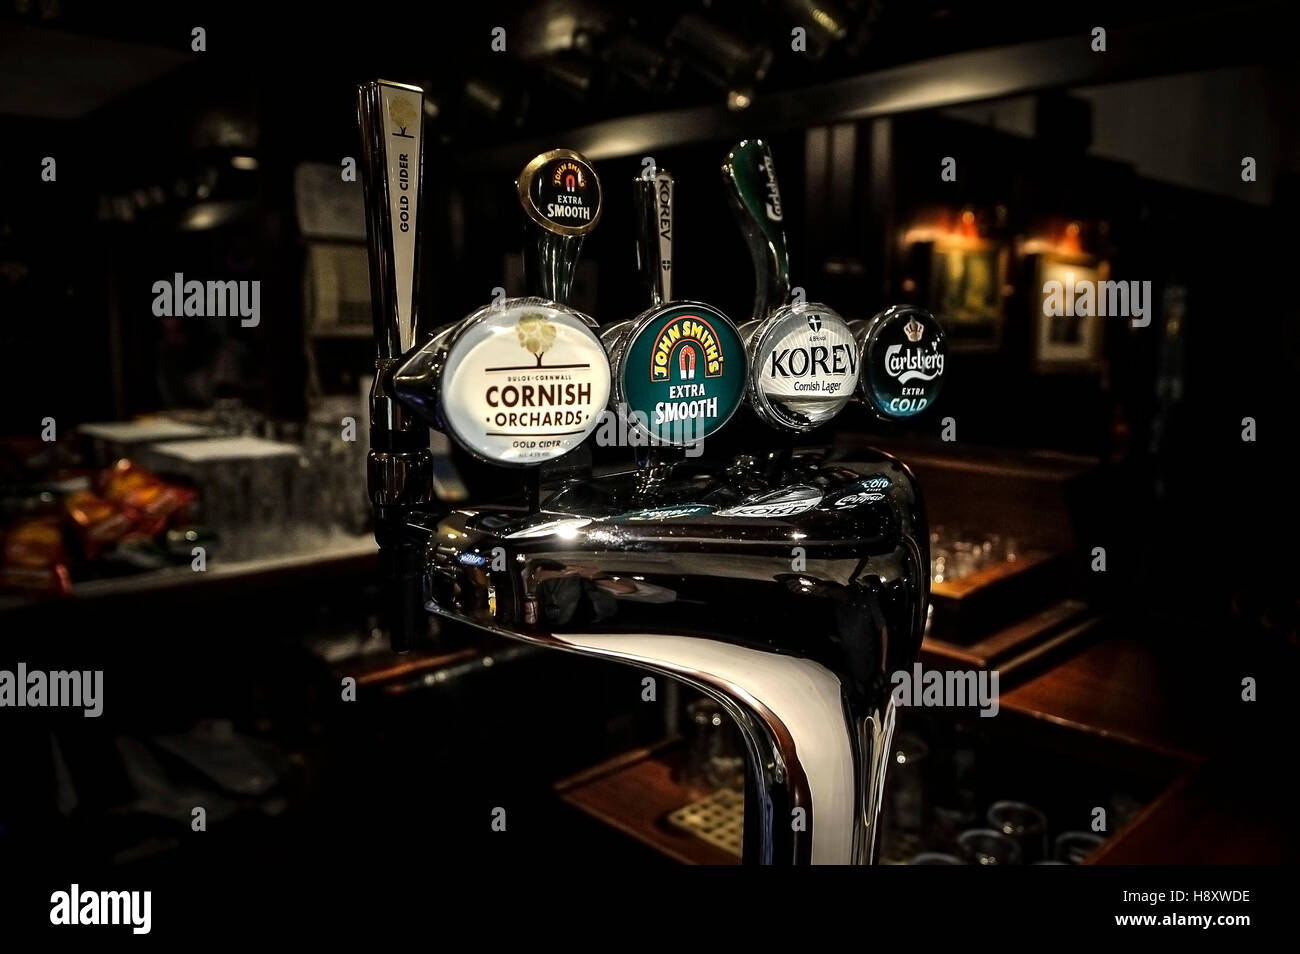 Illuminated beer, lager and cider pumps in a bar. - Stock Image